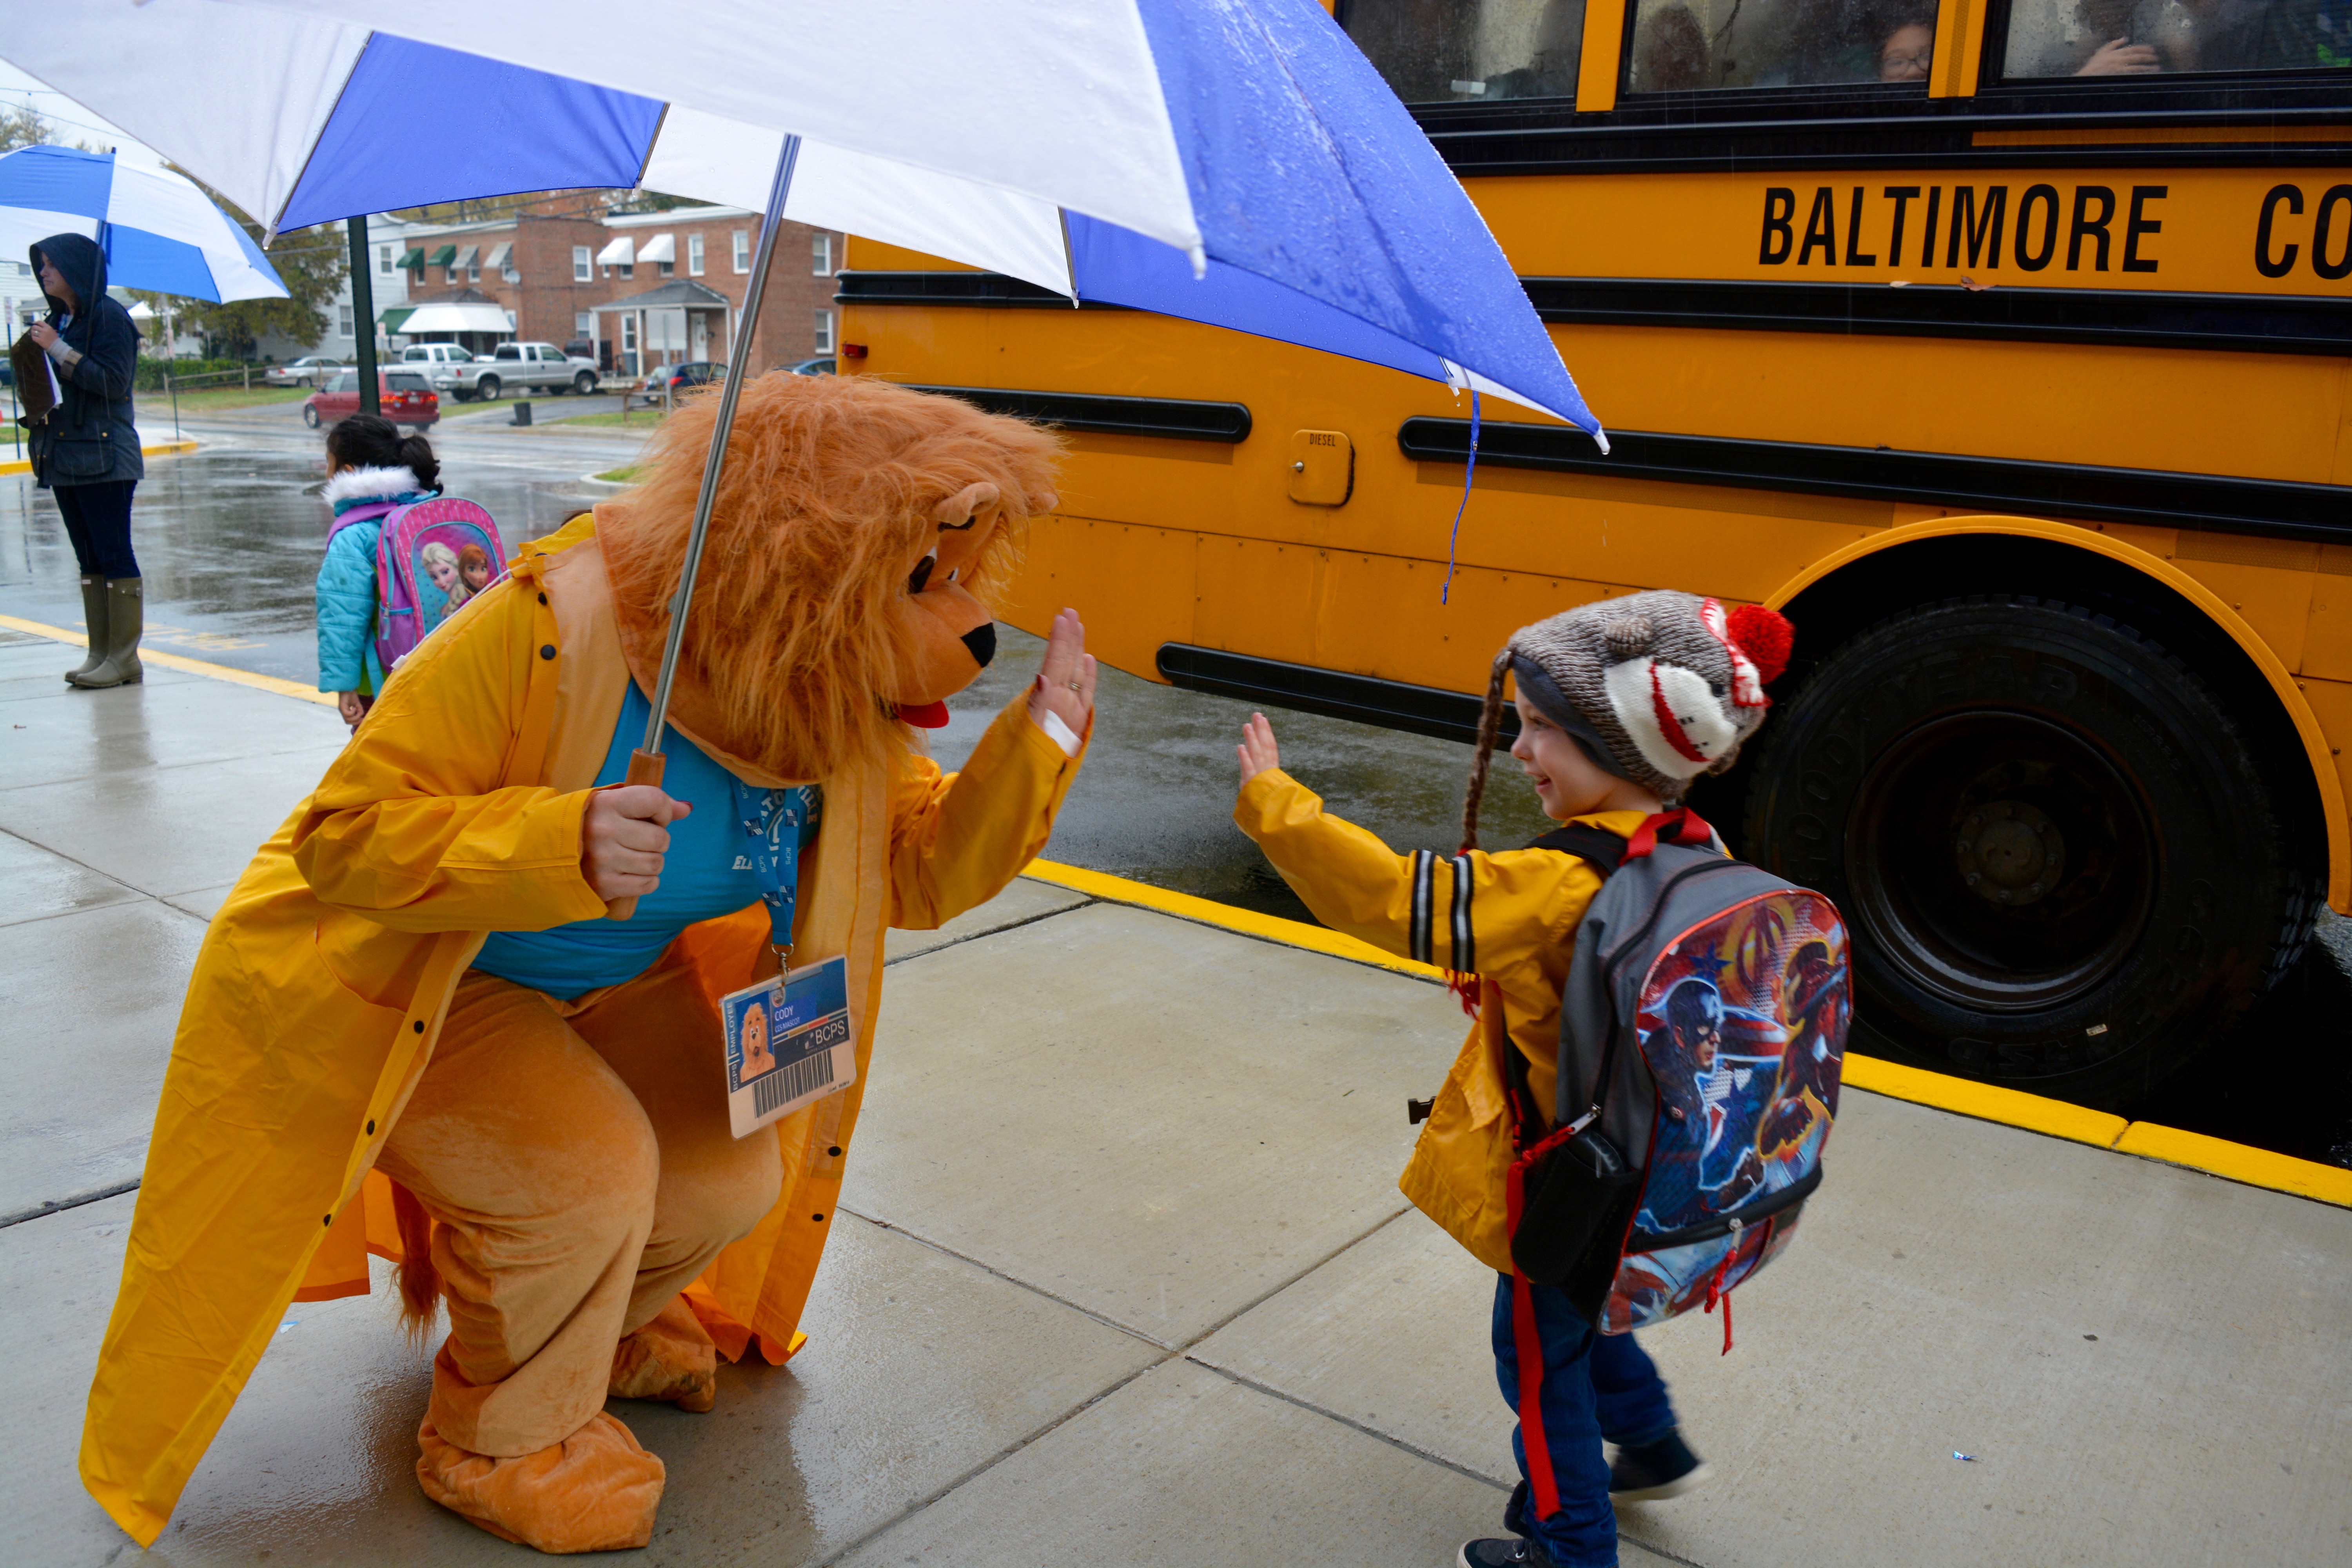 Cody the Cub, the newly named mascot of Catonsville Elementary School, greets students as they enter the school Wednesday, Nov. 9.